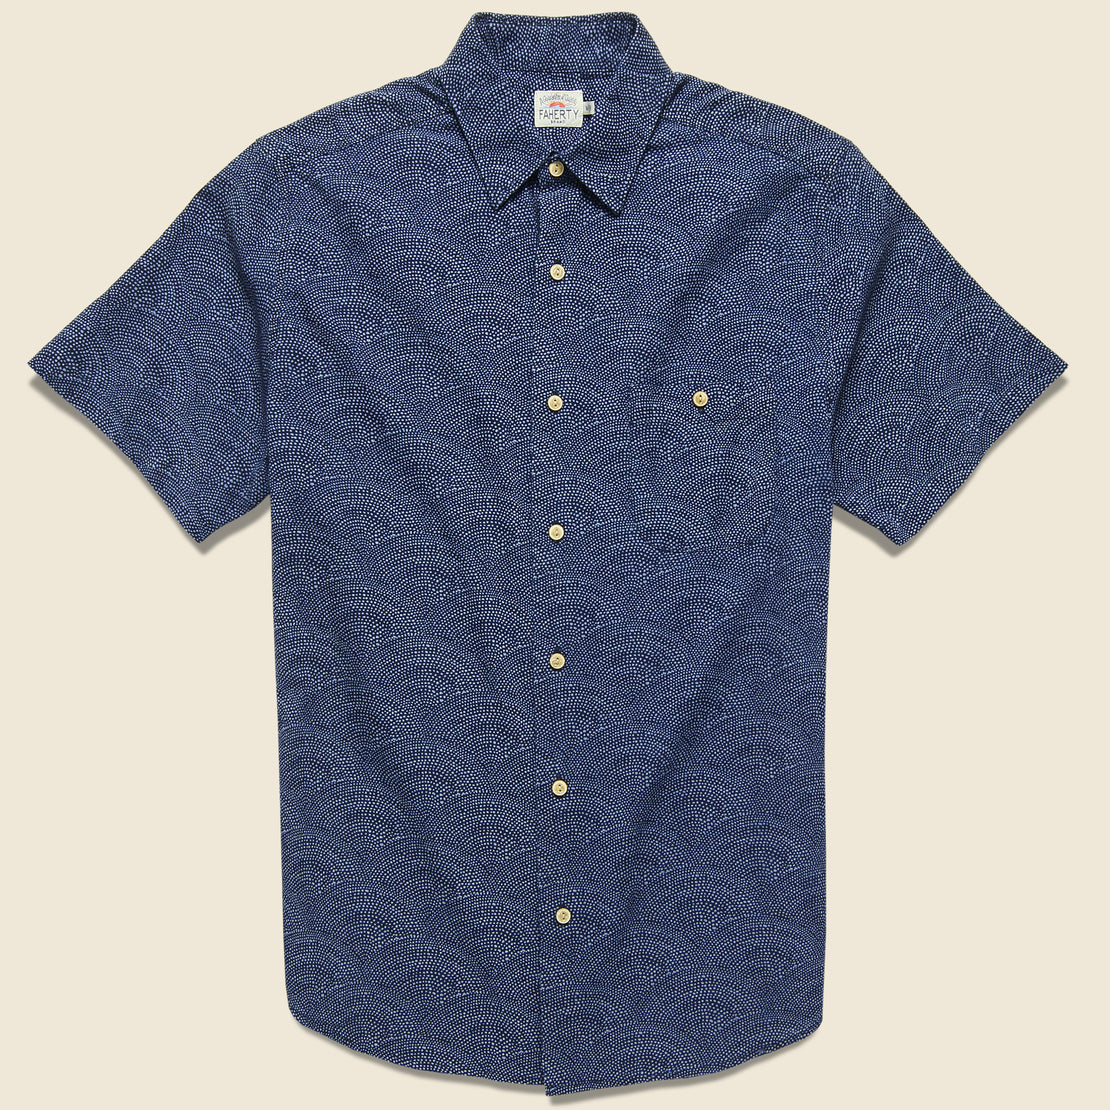 Faherty Coast Shirt - Indigo Ripple